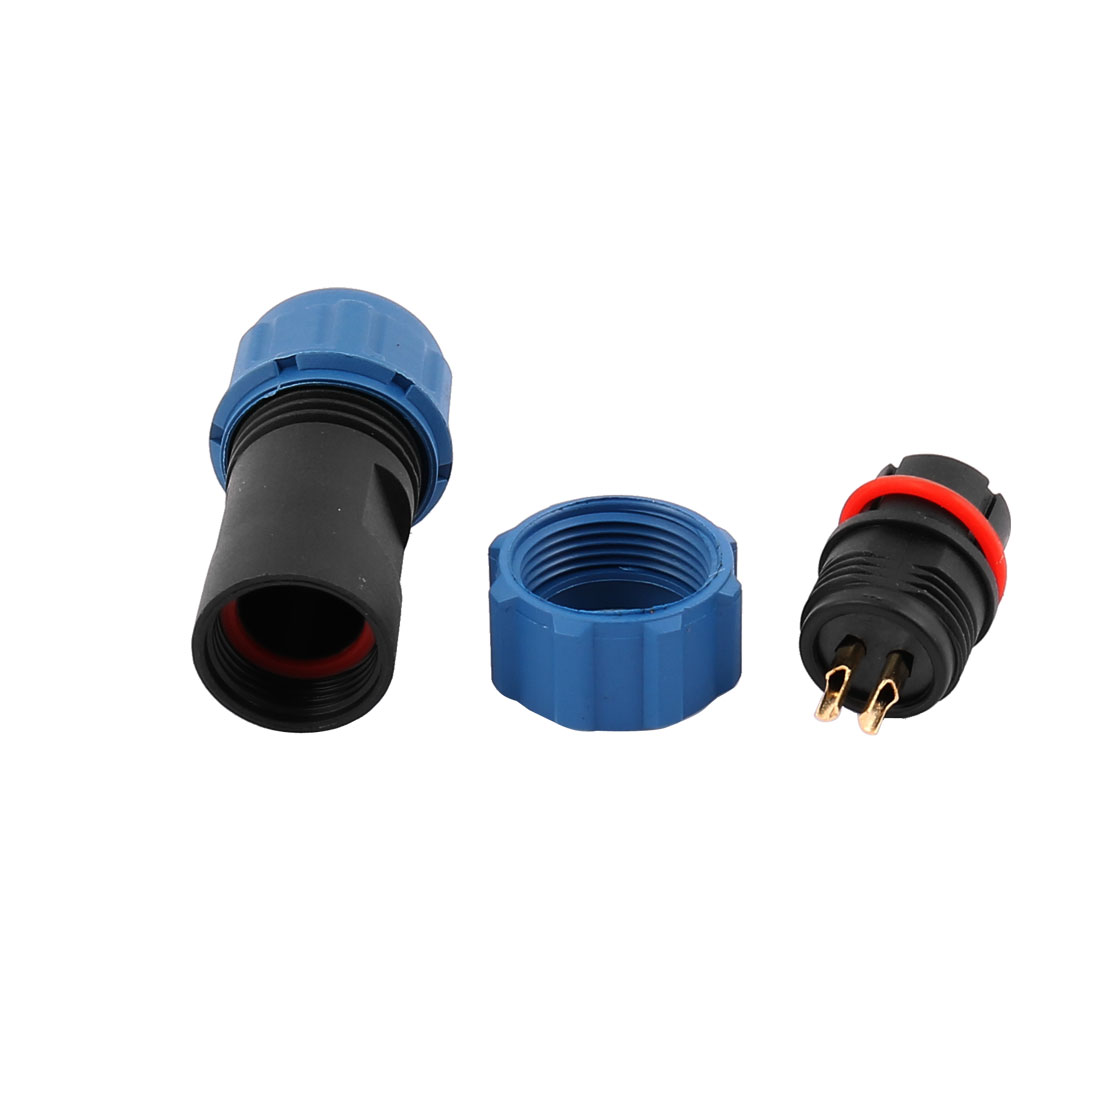 AC 250V 2 Poles SP1310/P Waterproof Aviation Dustproof Adapter Connector